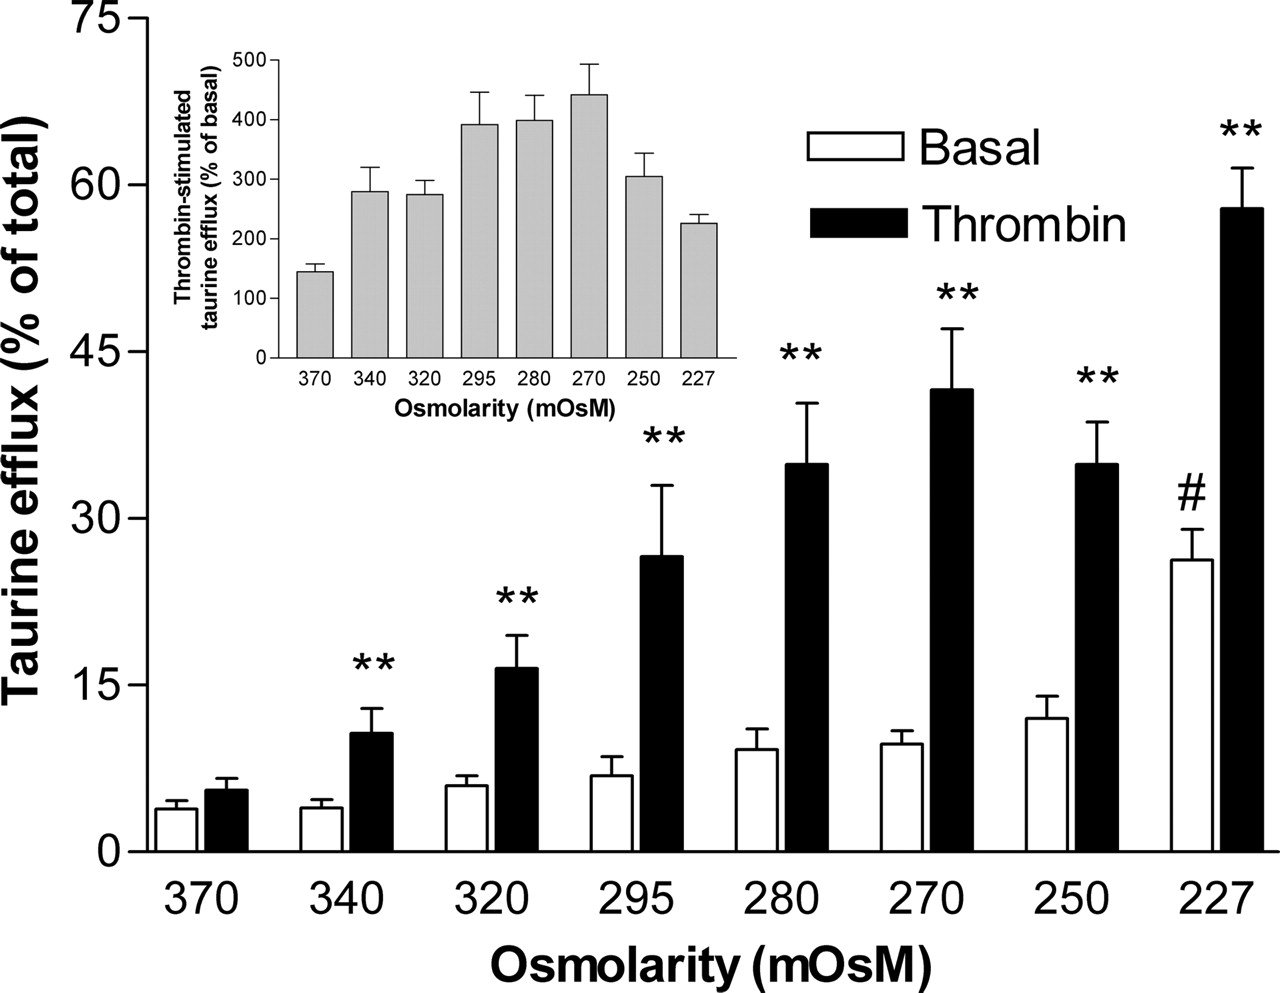 Subnanomolar Concentrations of Thrombin Enhance the Volume